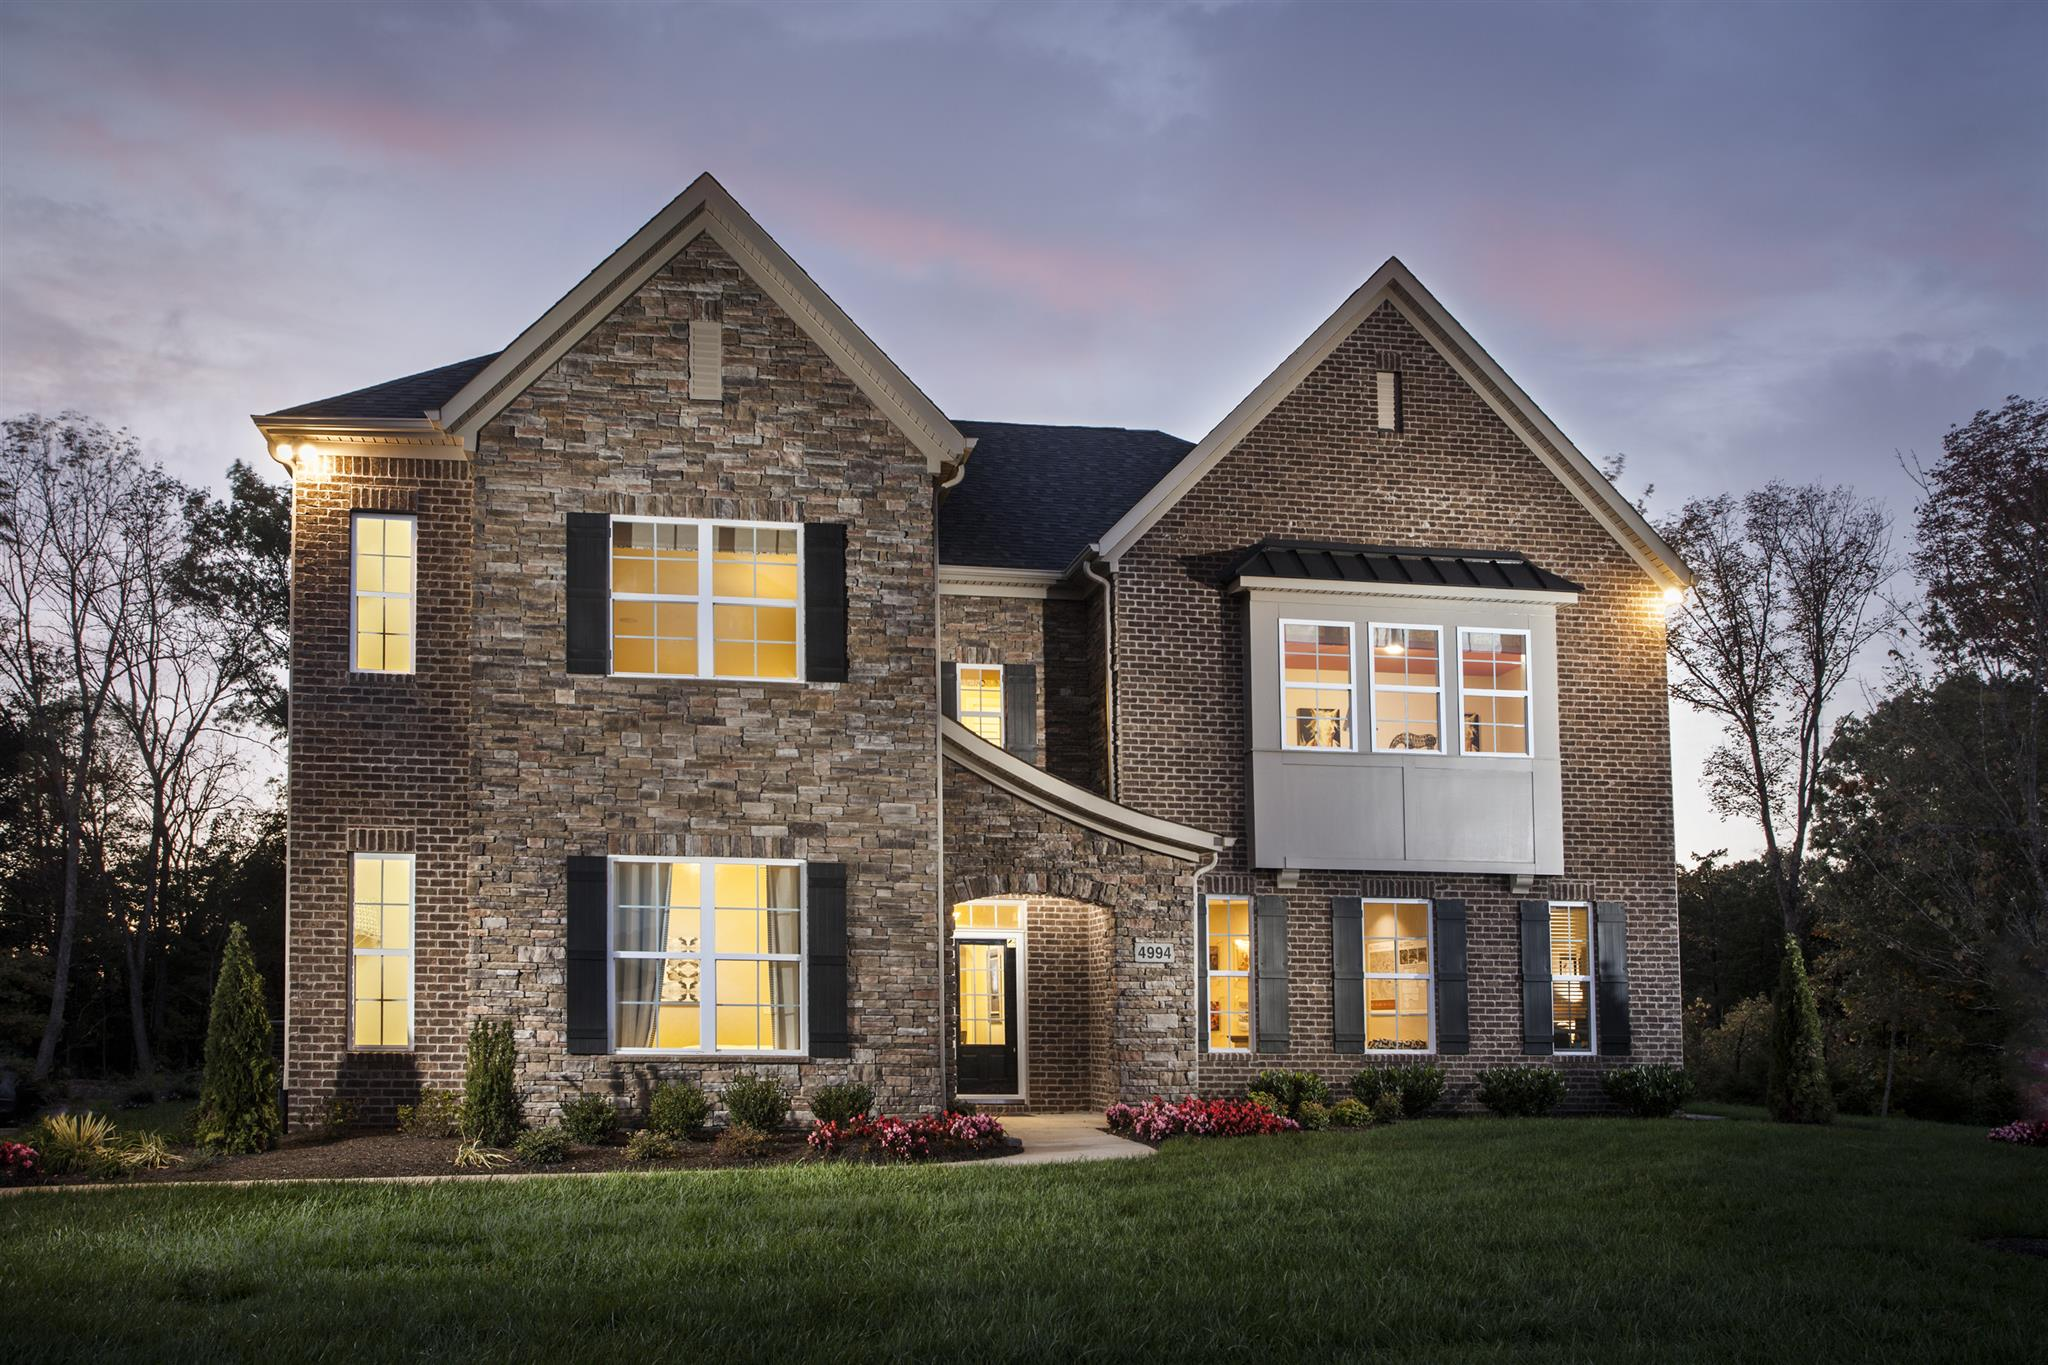 4994 Napoli Drive, Mount Juliet, Tennessee